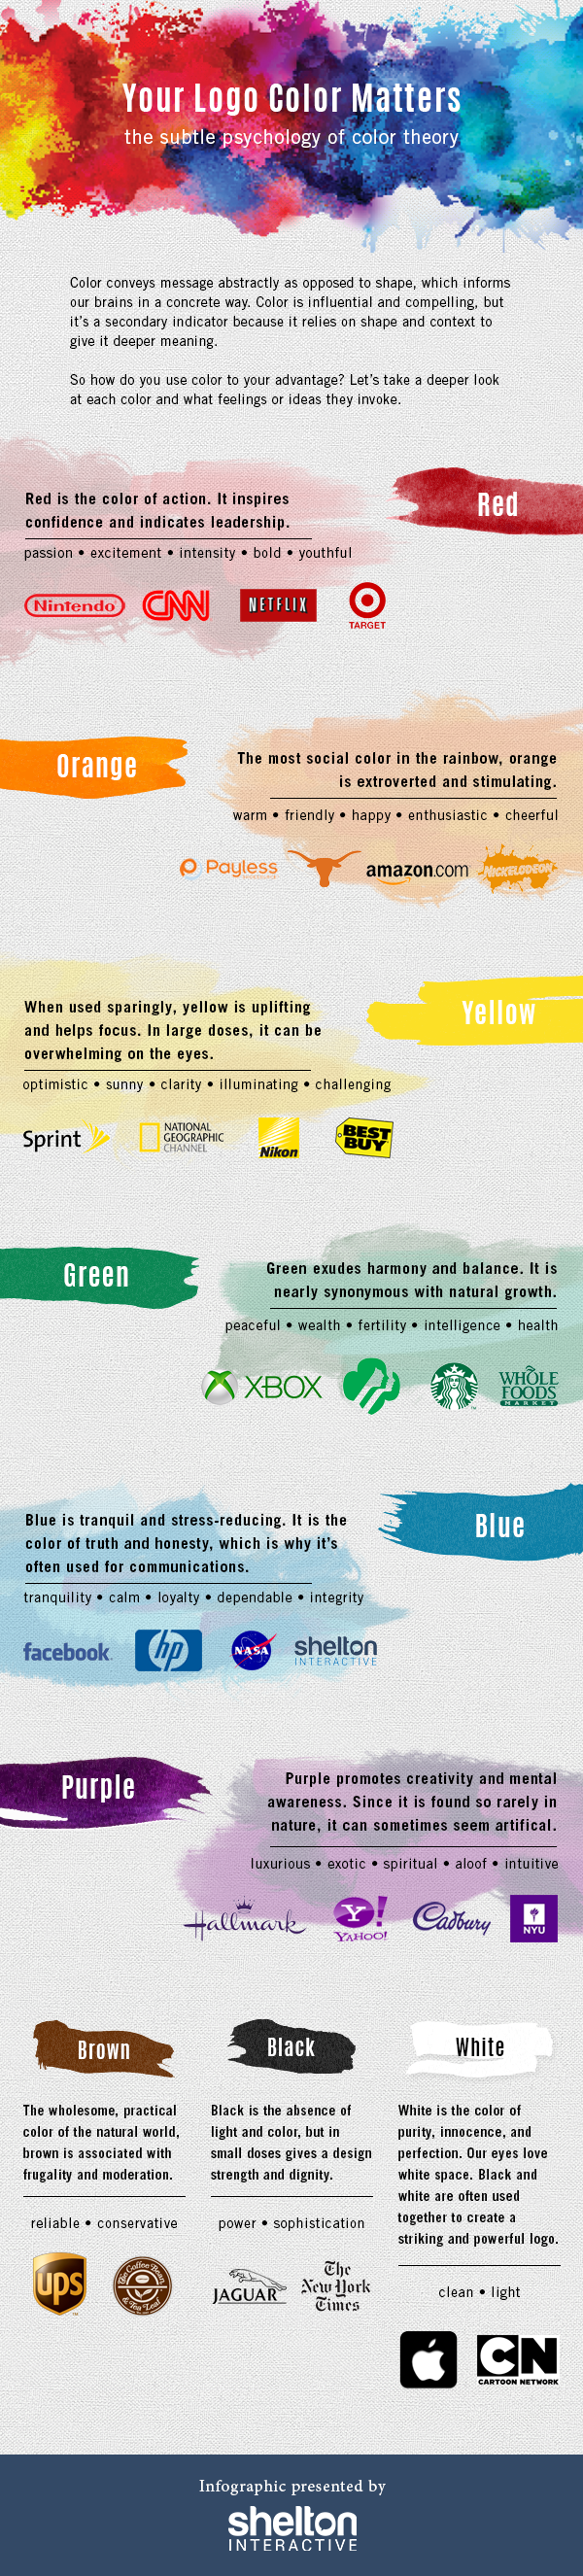 Infographic_LogoColor